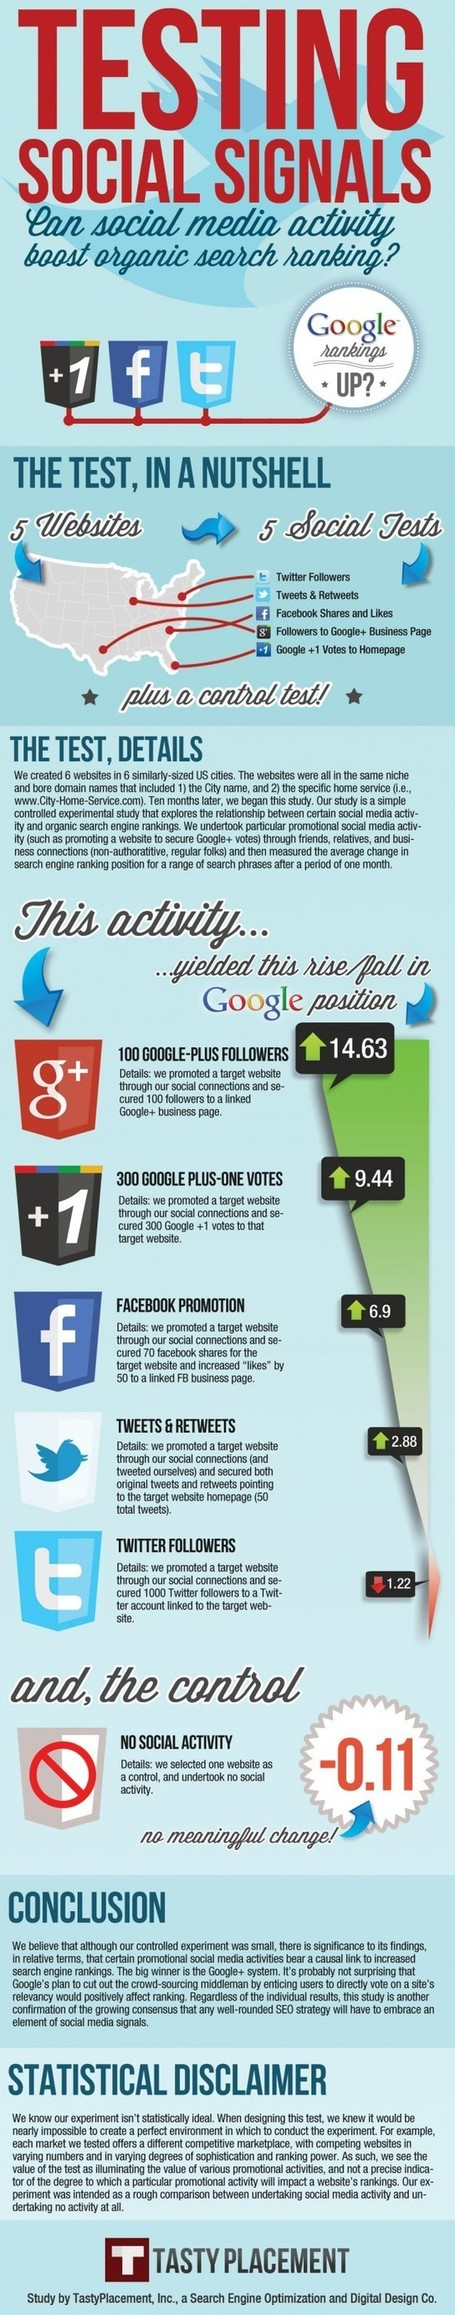 Grow Social Media Reach & become King of Google 1st Page | Infographics | All Infographics | Scoop.it